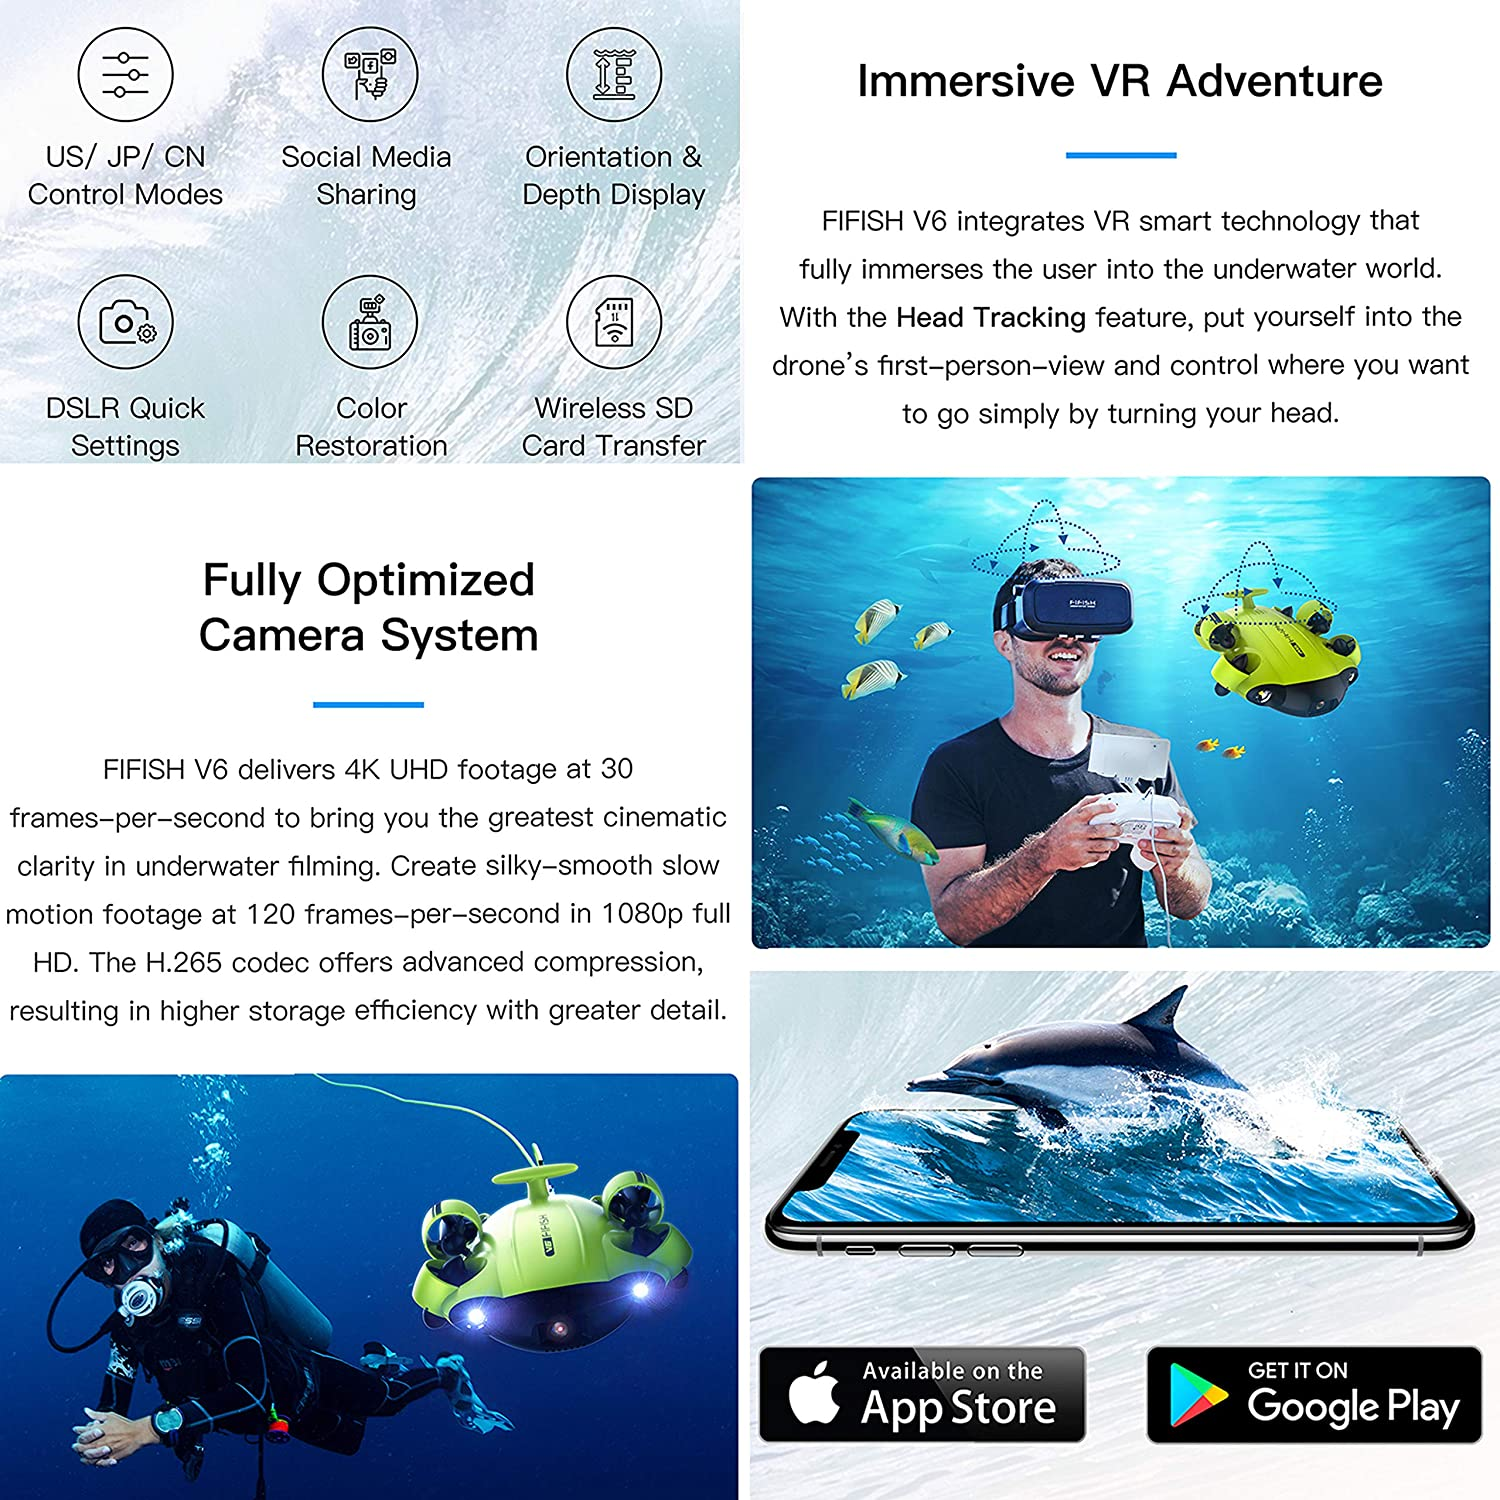 FIFISH Underwater Drone V6s Cable 100m Robotic Arm QYSEA 847876